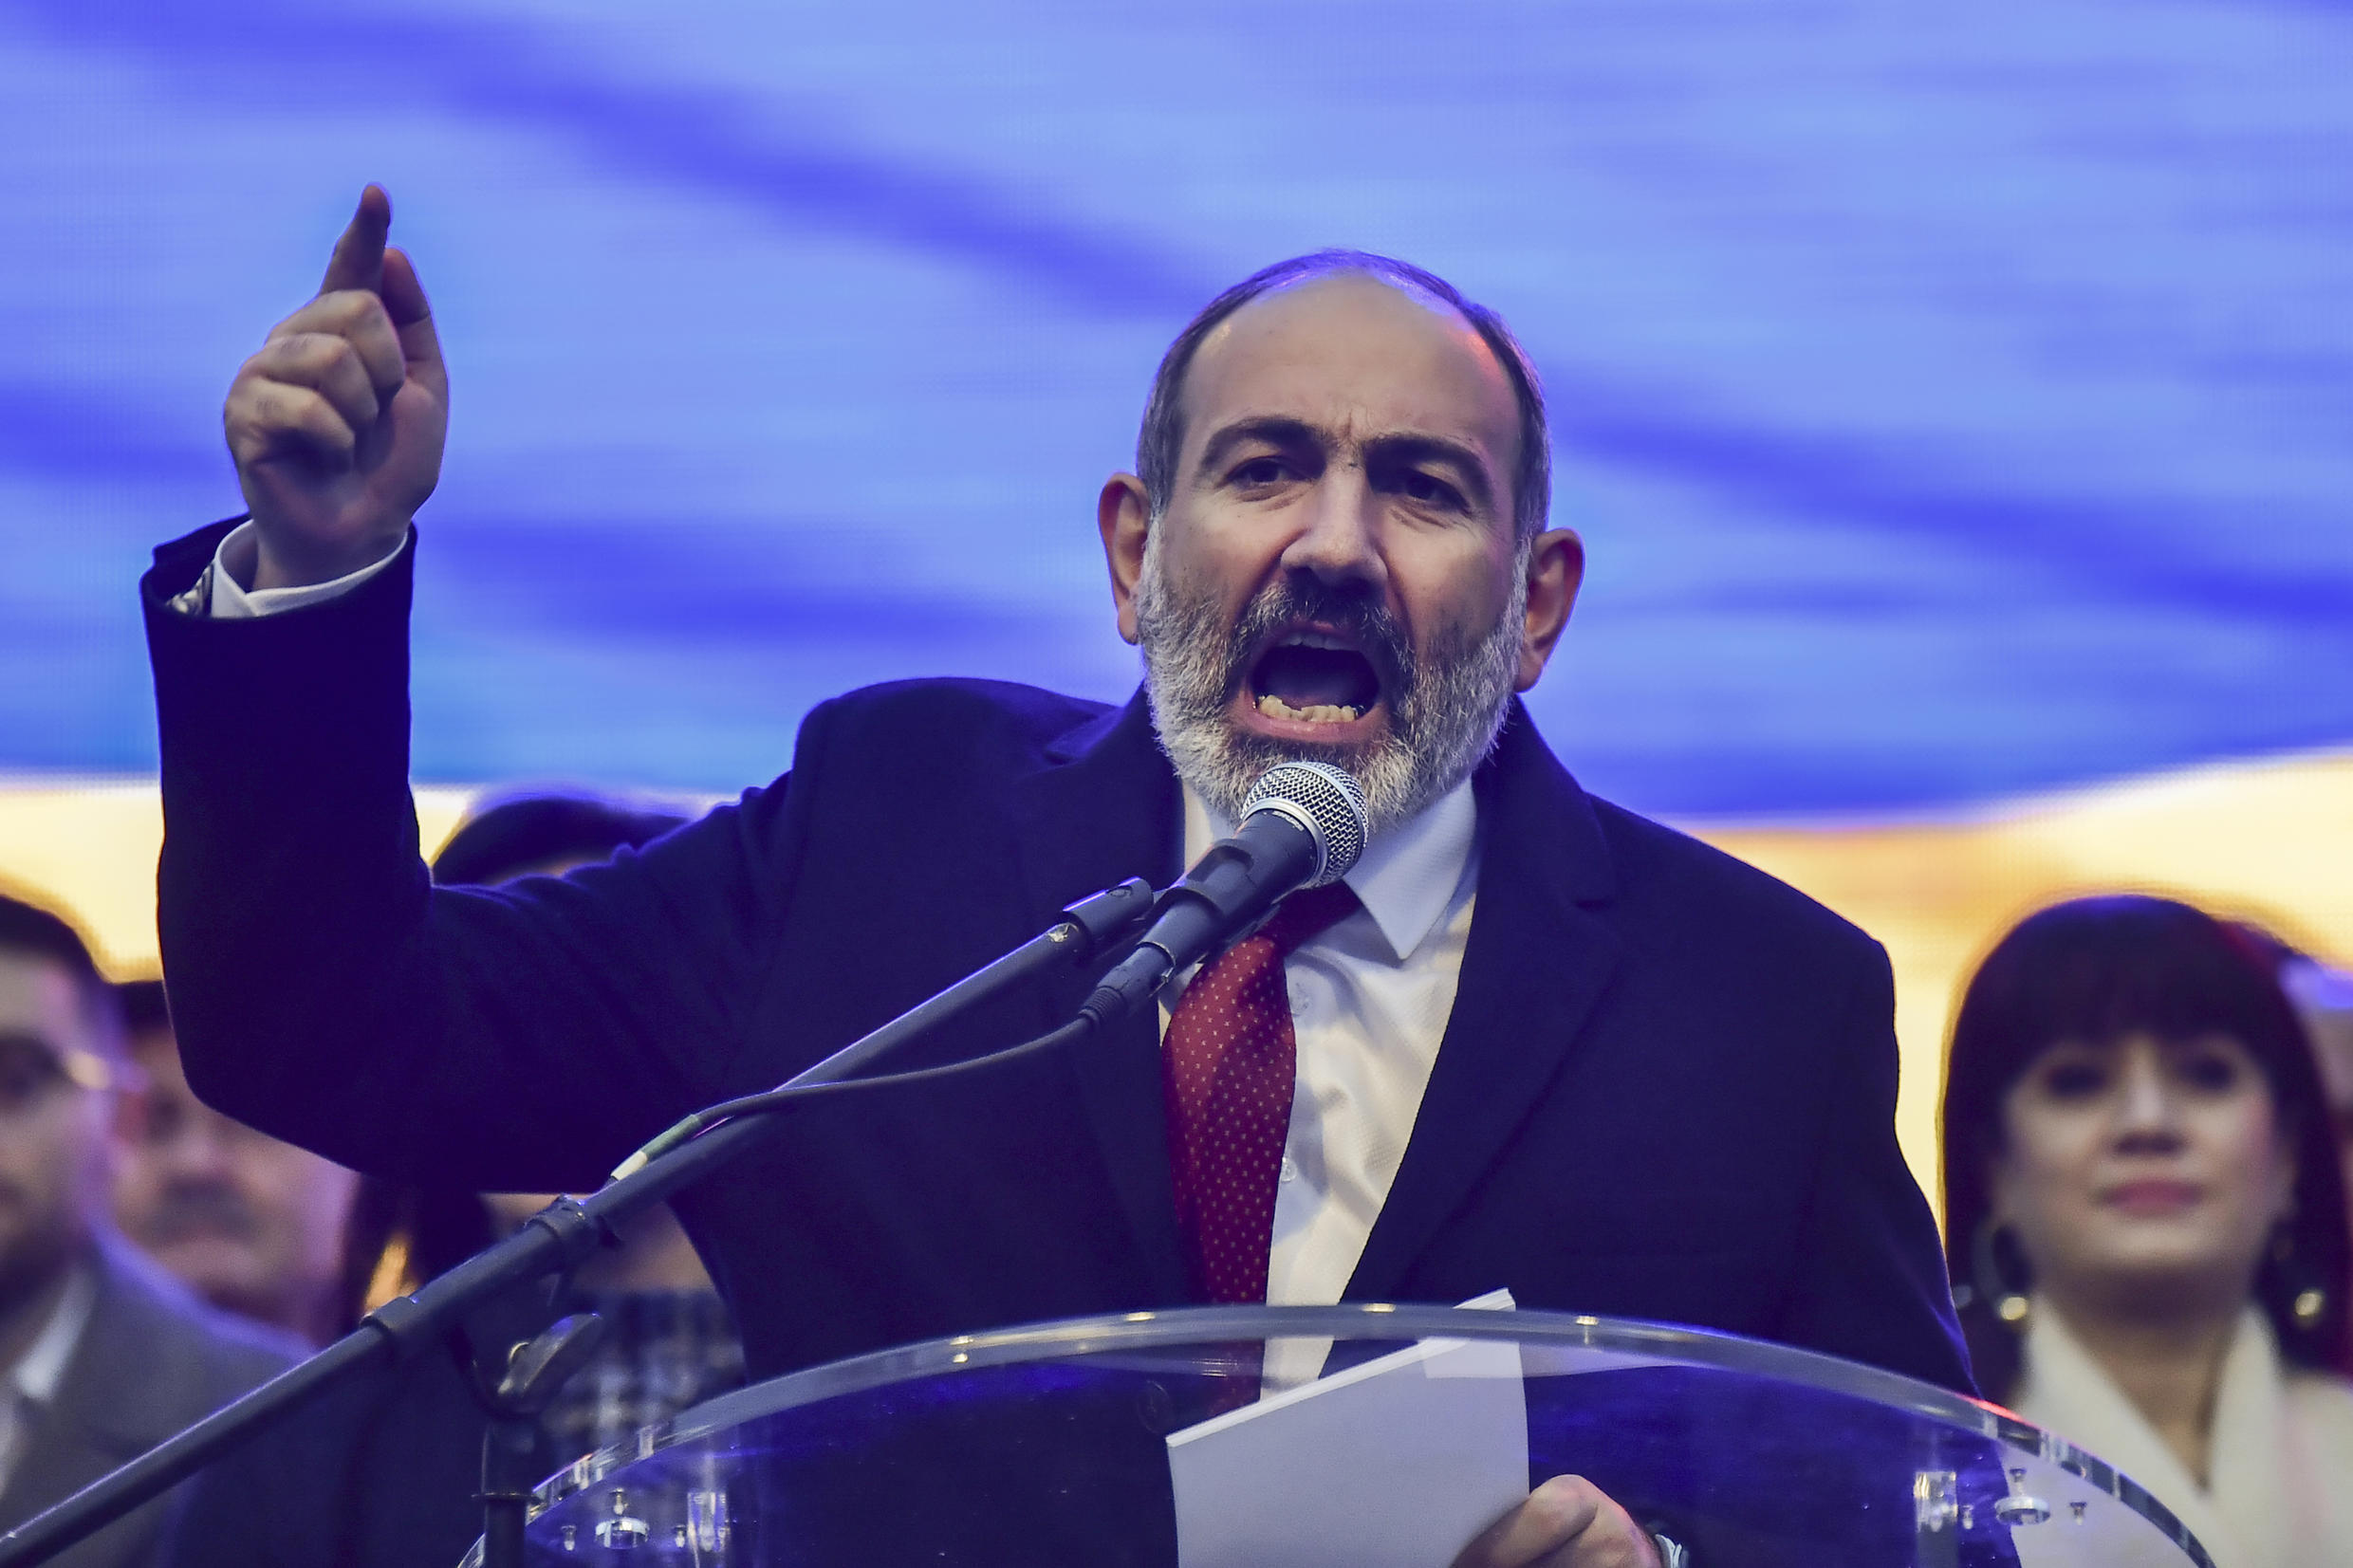 Armenian Prime Minister Nikol Pashinyan has been under pressure to step down after accepting a ceasefire with Azerbaijan, which many saw as a national humiliation